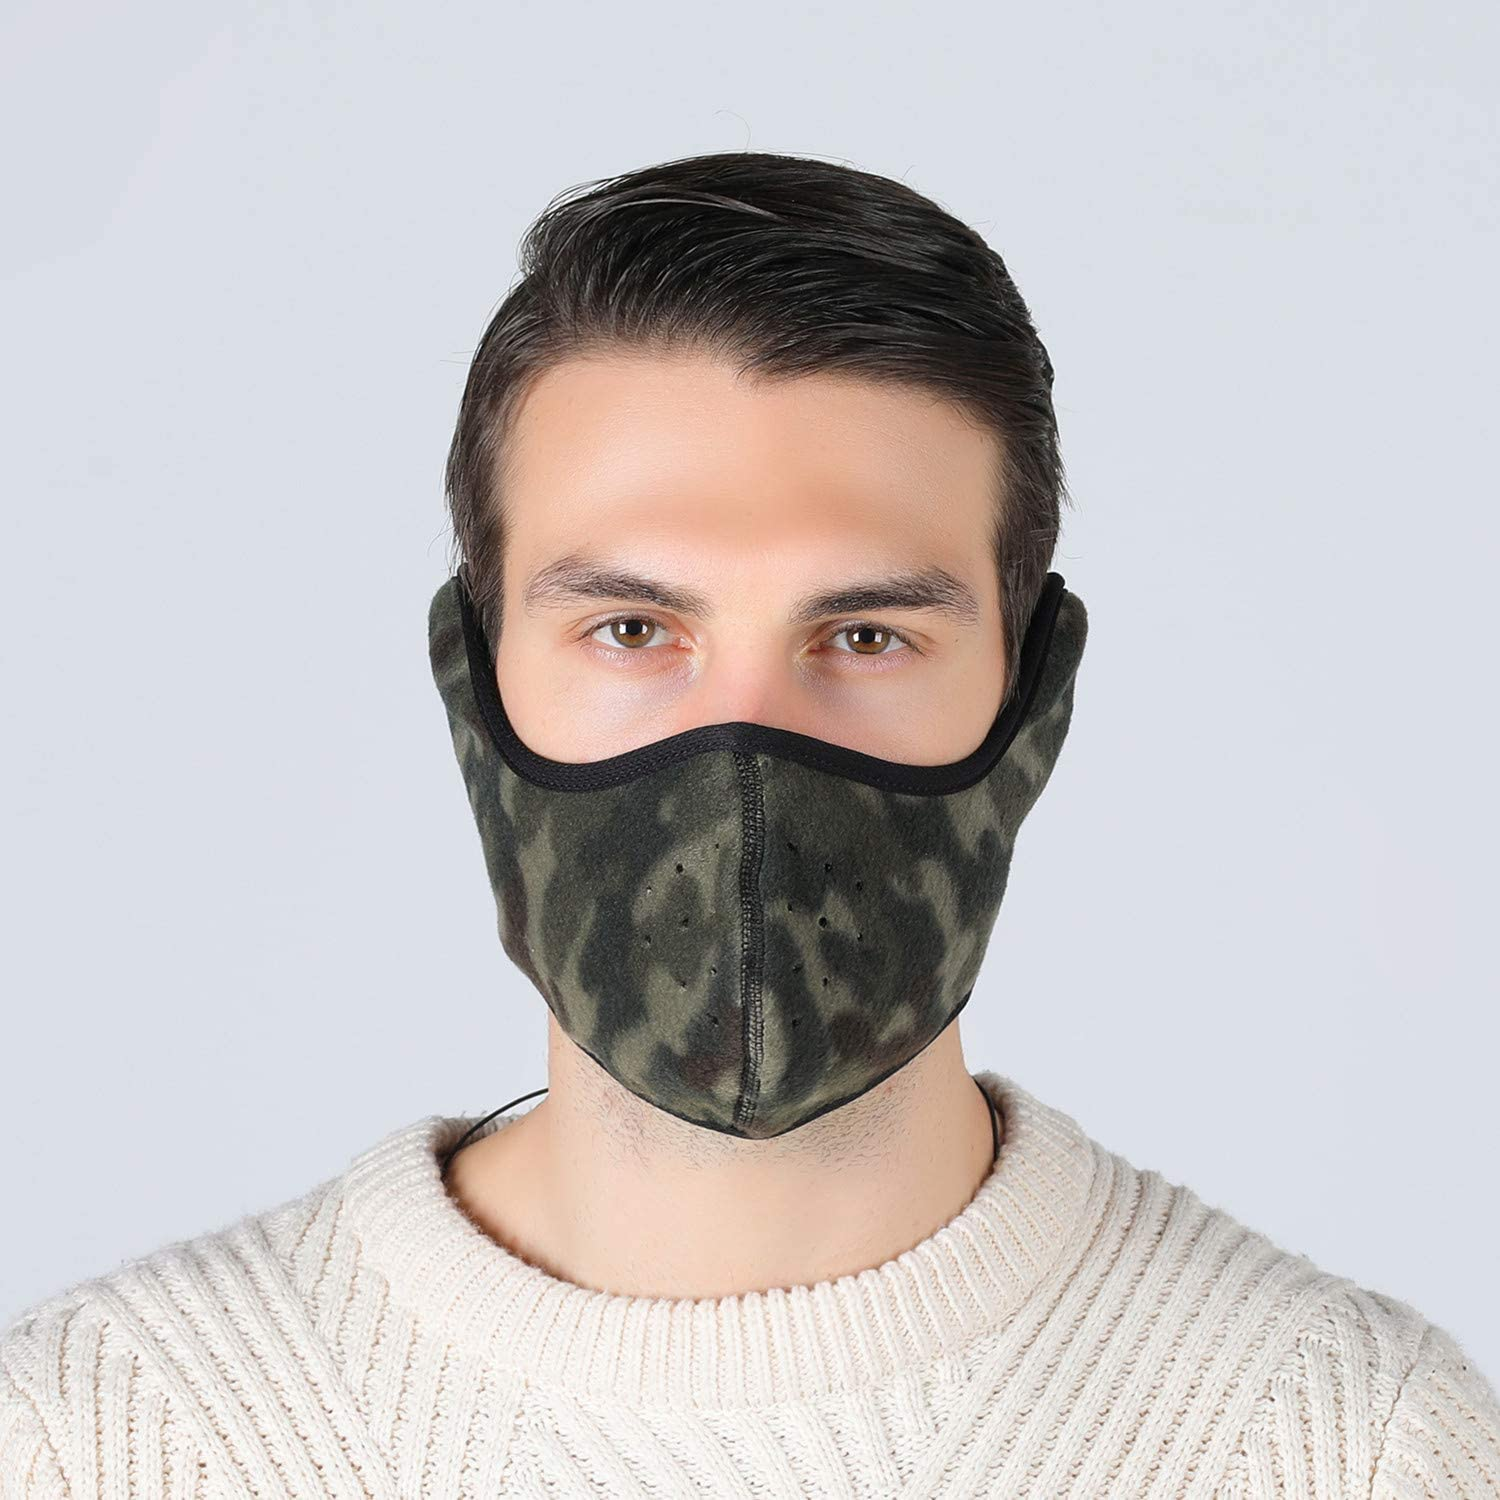 Tweal Winter Cold-proof Mask,Winter Half Face Mask Face Warmer Cold-Proof Cycling Mask With Earflap and Hole for Outdoor Sports-Camouflage(Unisex Warm)